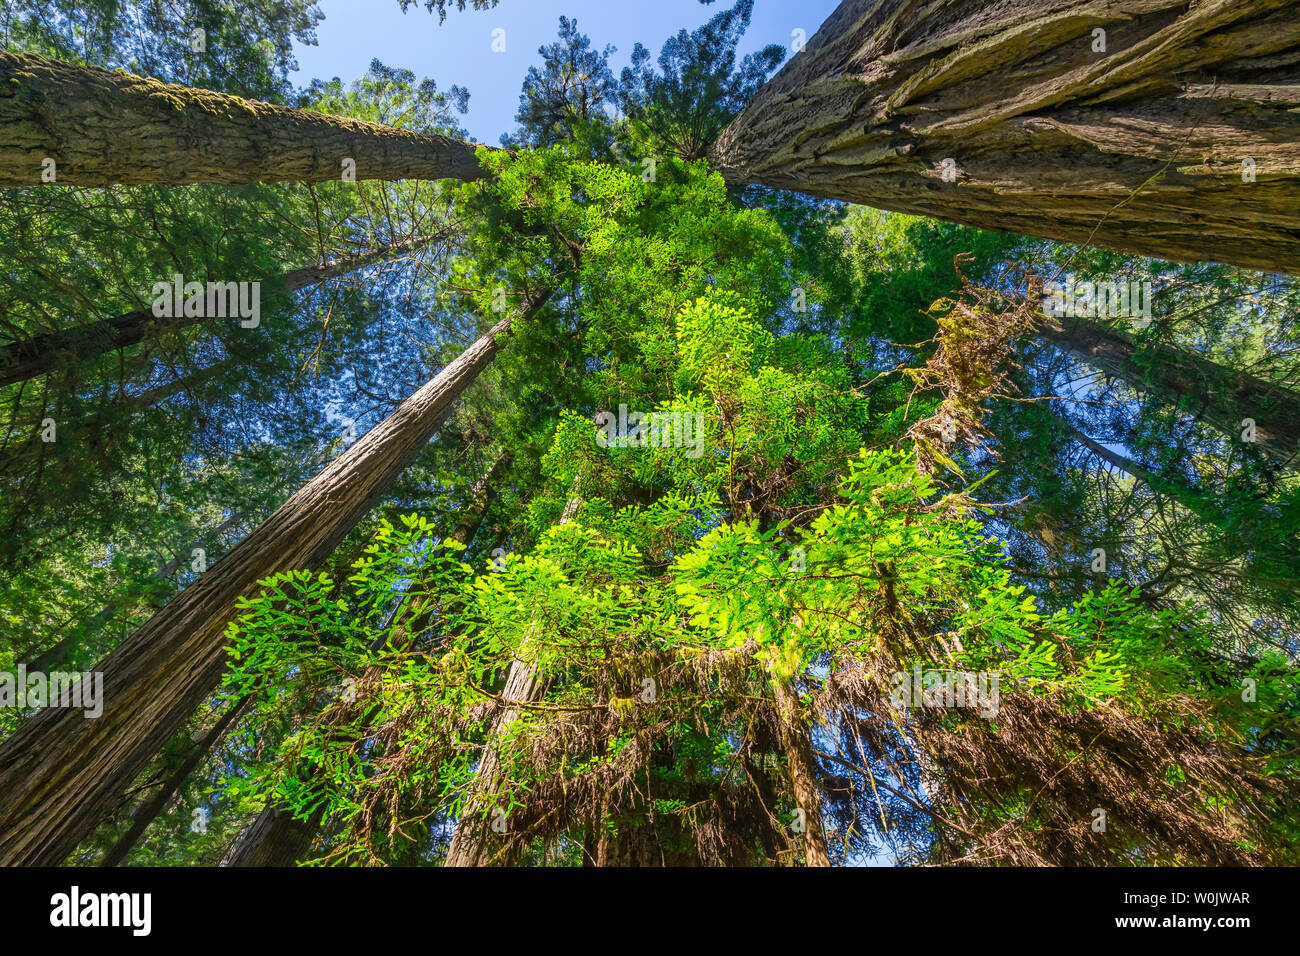 Green Towering Redwoods National Park Newton B Drury Drive Crescent City California. Tallest trees in  World, 1000s of year old, size large buildings Stock Photo